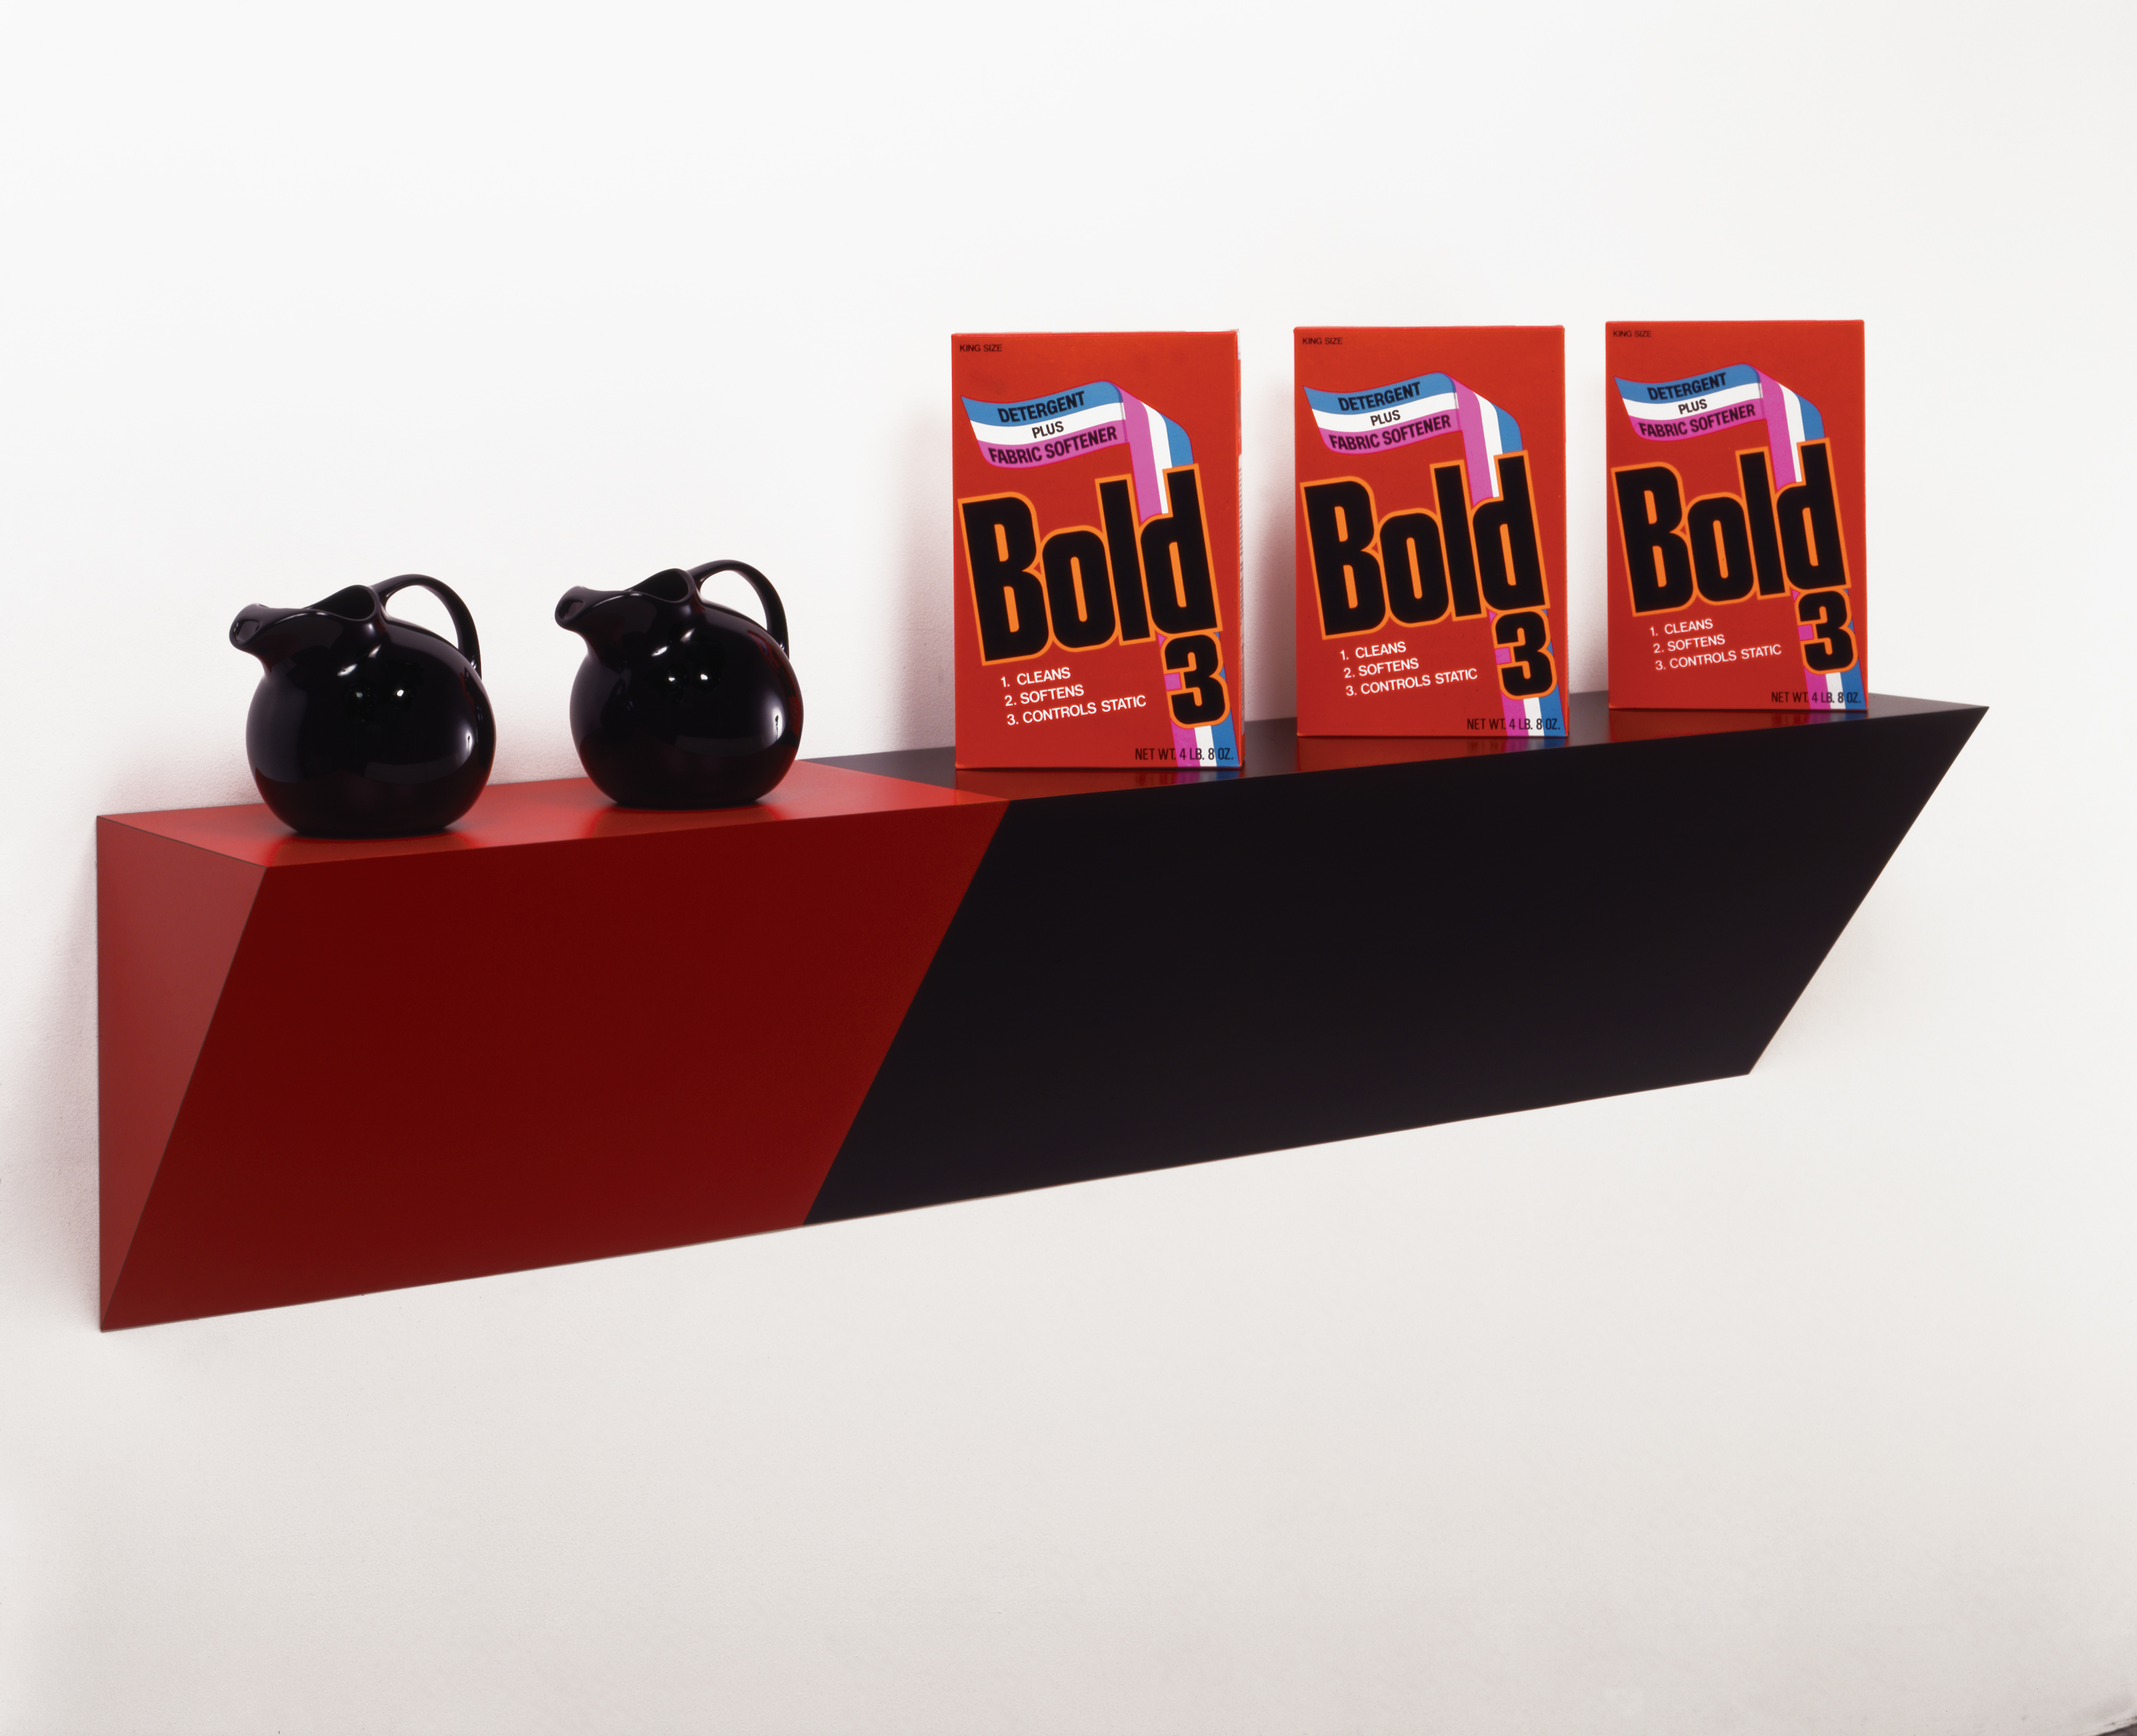 red and black sculpture featuring detergent boxes and pitchers